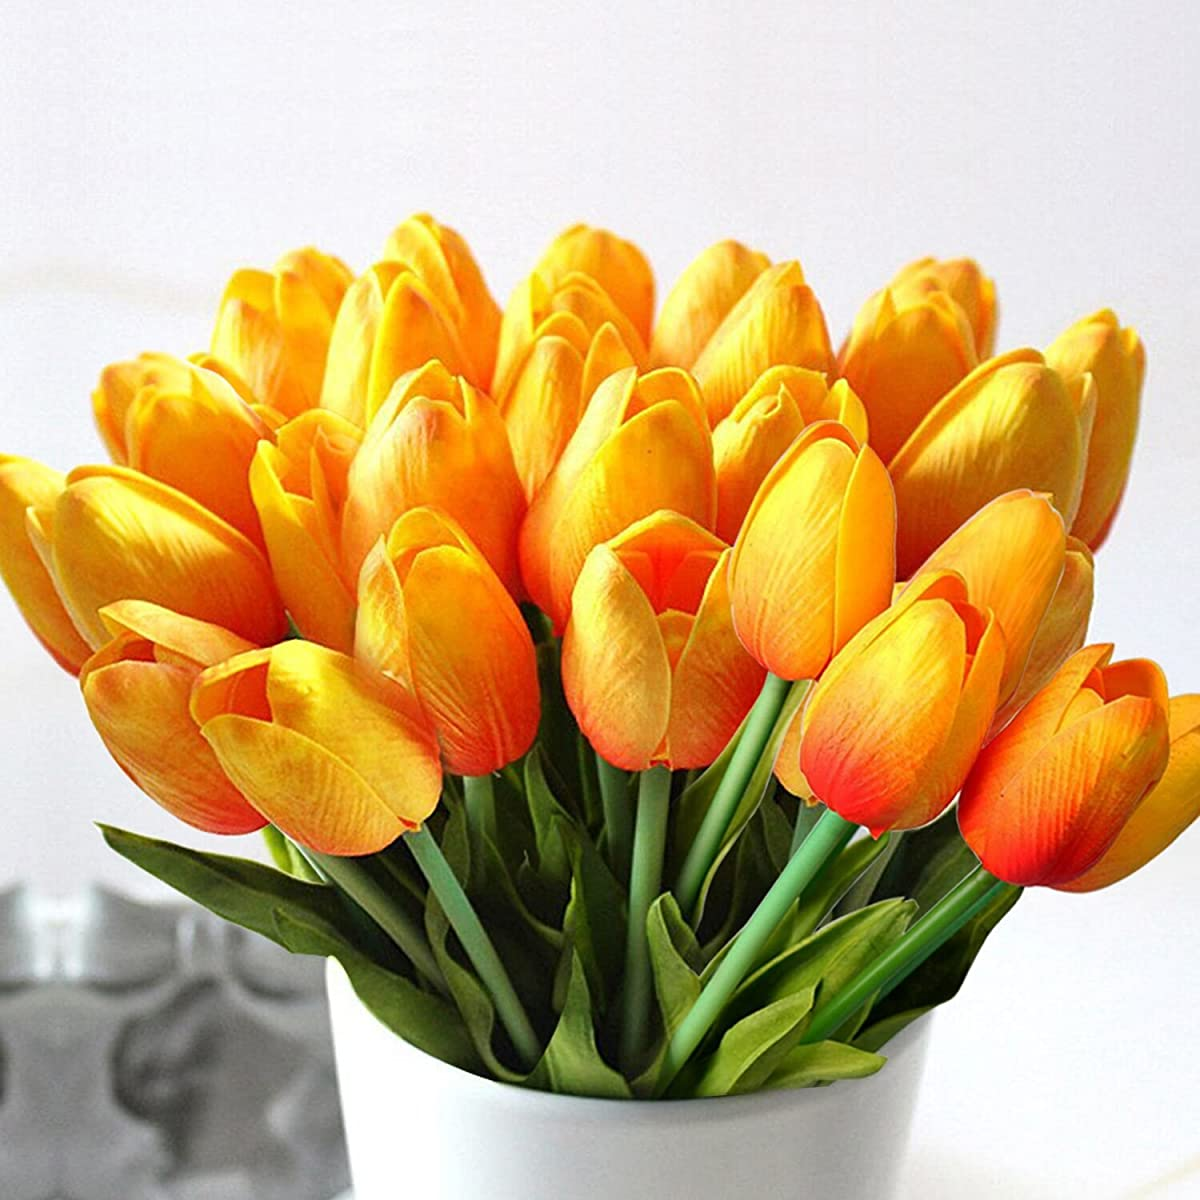 StillCool Artificial Flowers Tulip 12pc/set Pu Stunning Holland Mini Tulip Real Touch Wedding Flower Artificial Flowers Latex Plants for Party Home Hotel Event Christmas Gift Decoration (Orange)